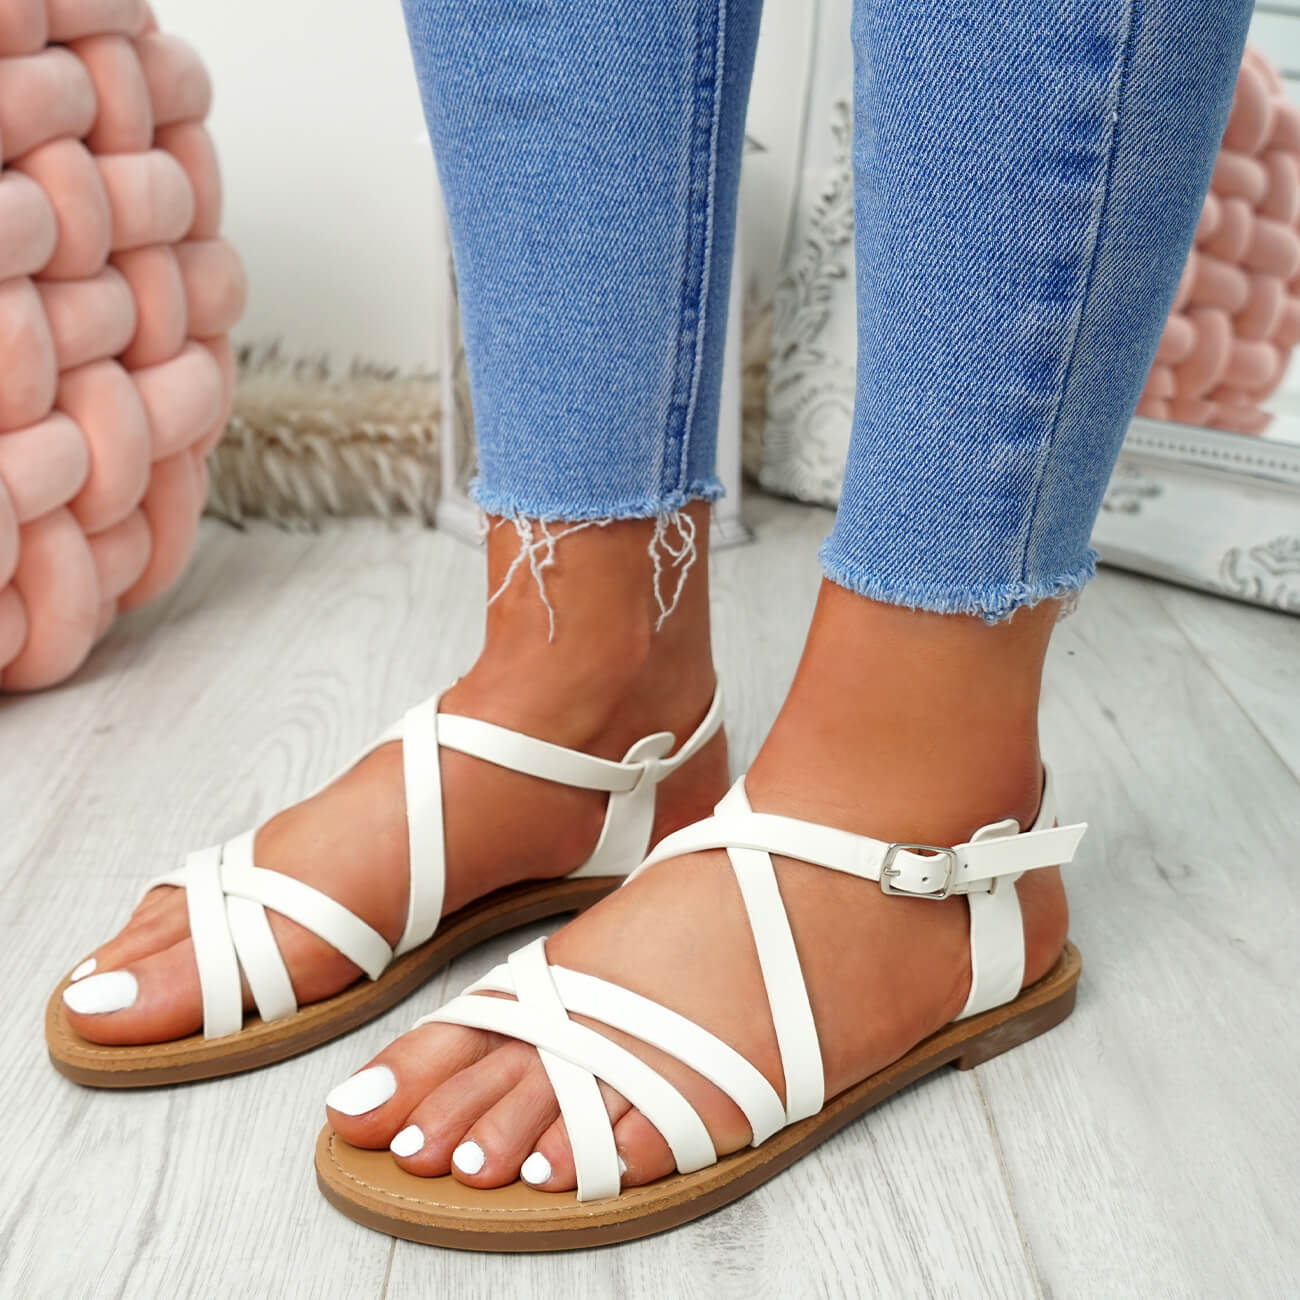 WOMENS-LADIES-ANKLE-STRAP-PEEP-TOE-BUCKLE-FLAT-SANDALS-SUMMER-CASUAL-SHOES thumbnail 33